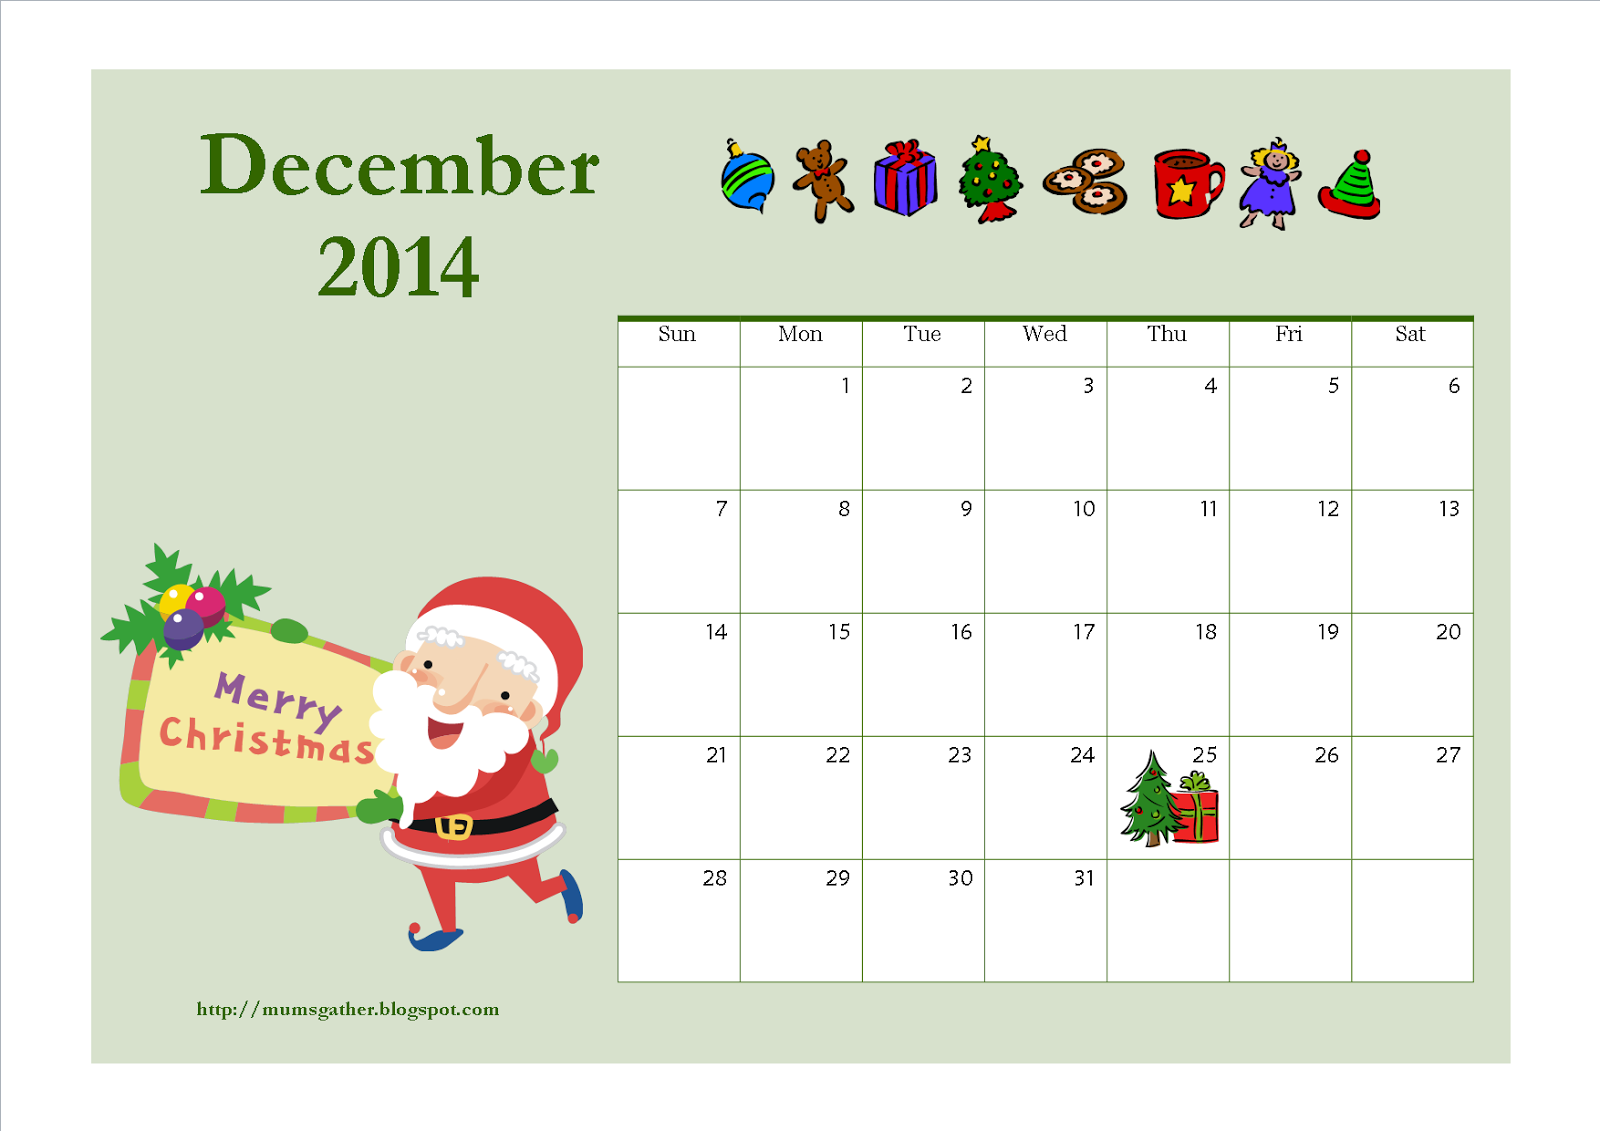 Christmas Calendar 2014 : December calendar santa download link for free